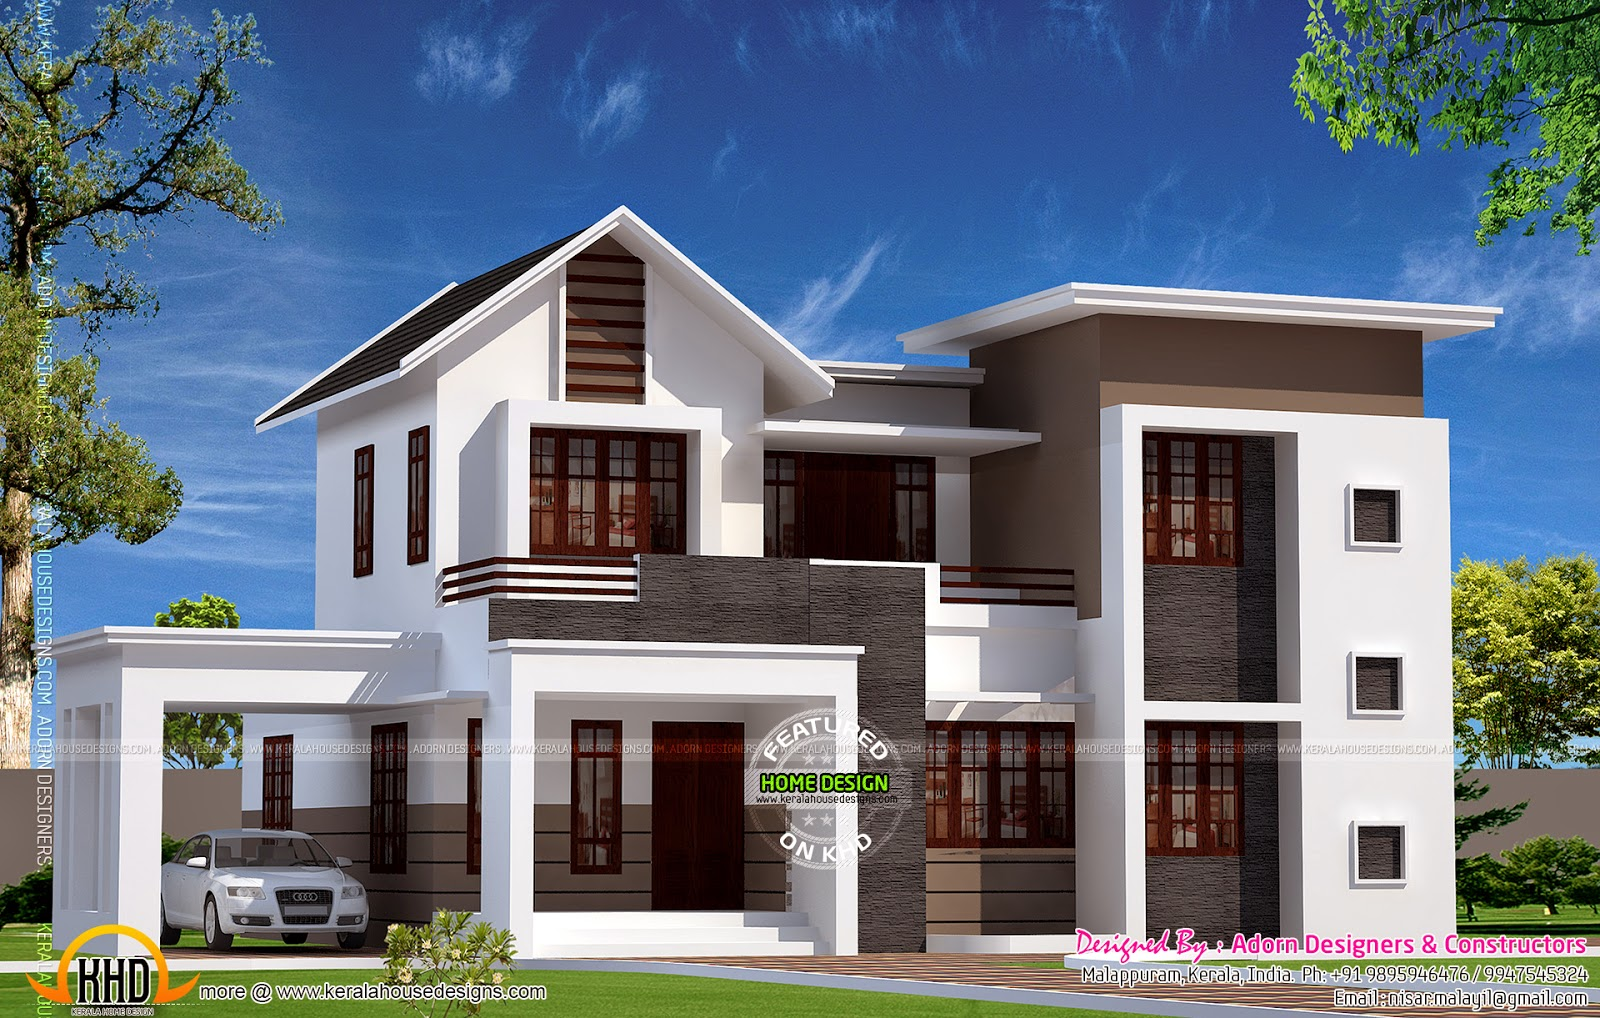 New house design in 1900 sq feet kerala home design and for Cheap model homes